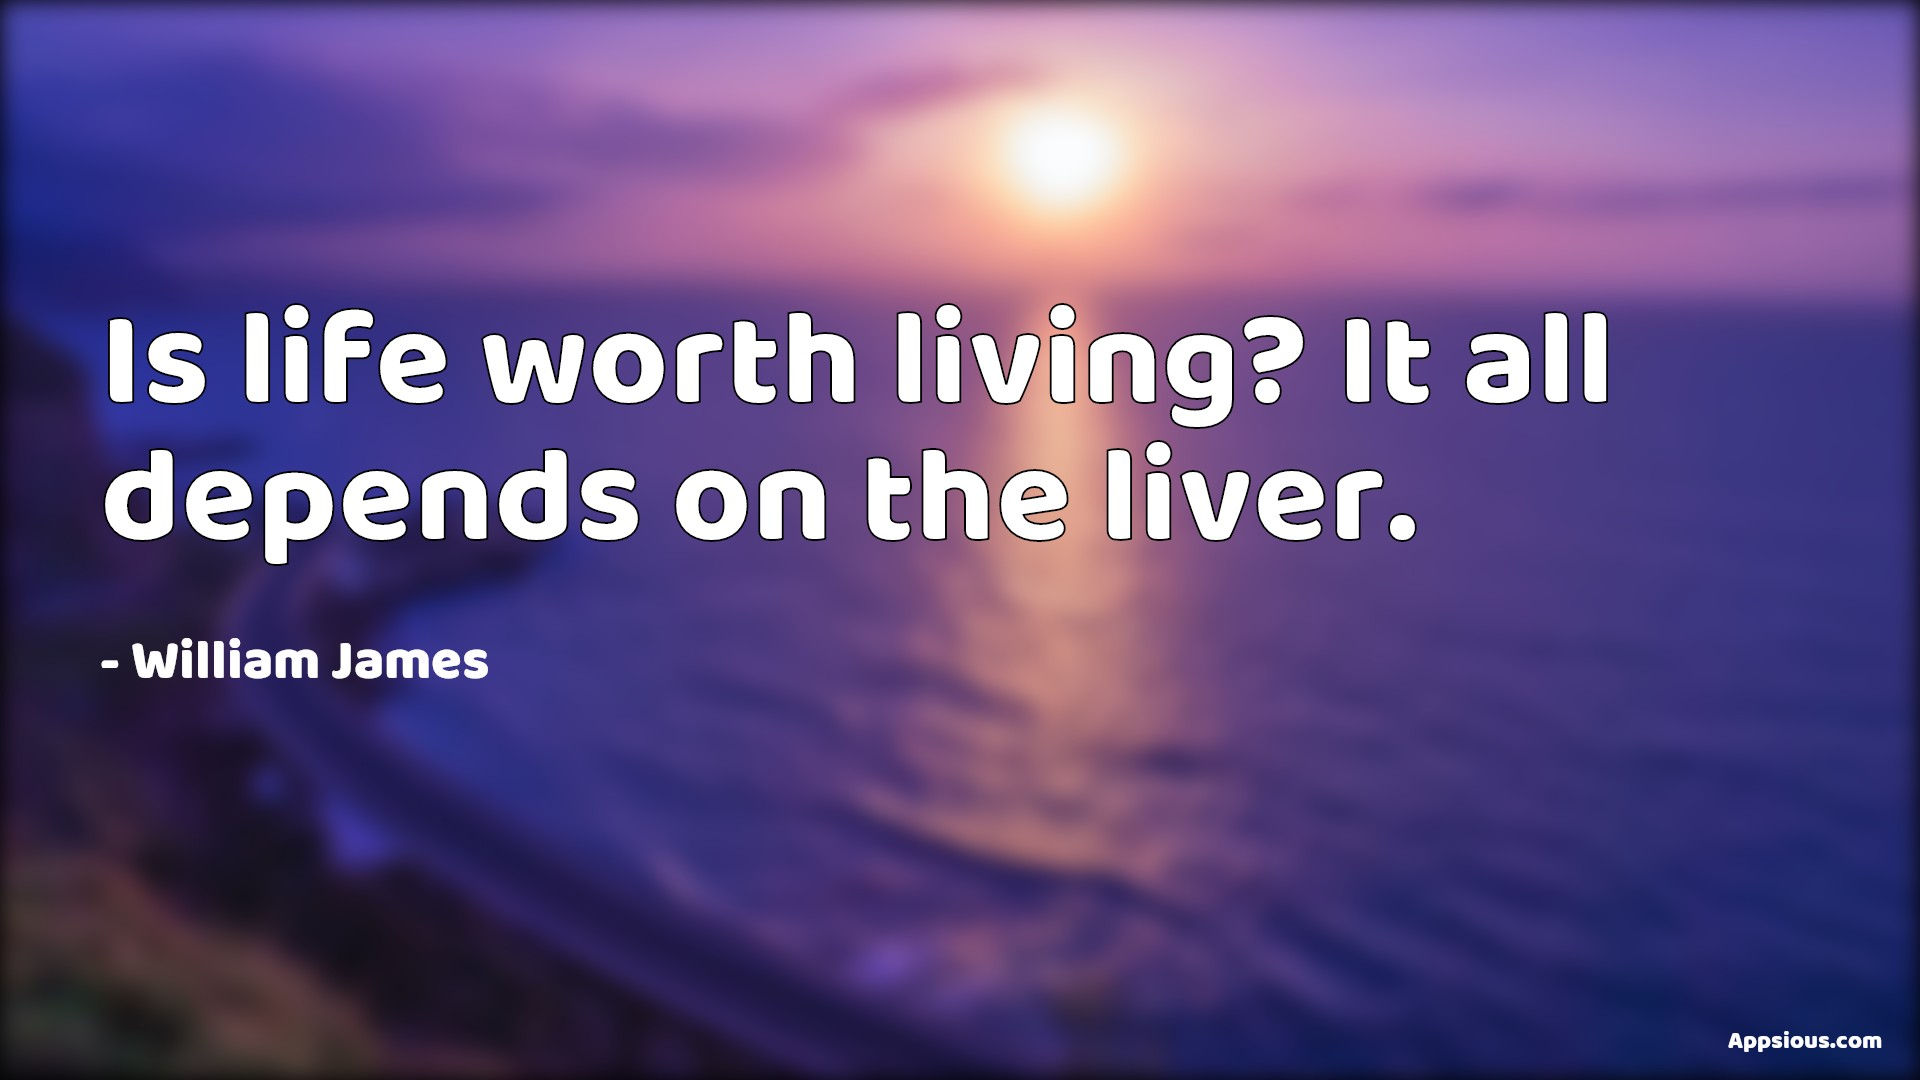 Is life worth living? It all depends on the liver.